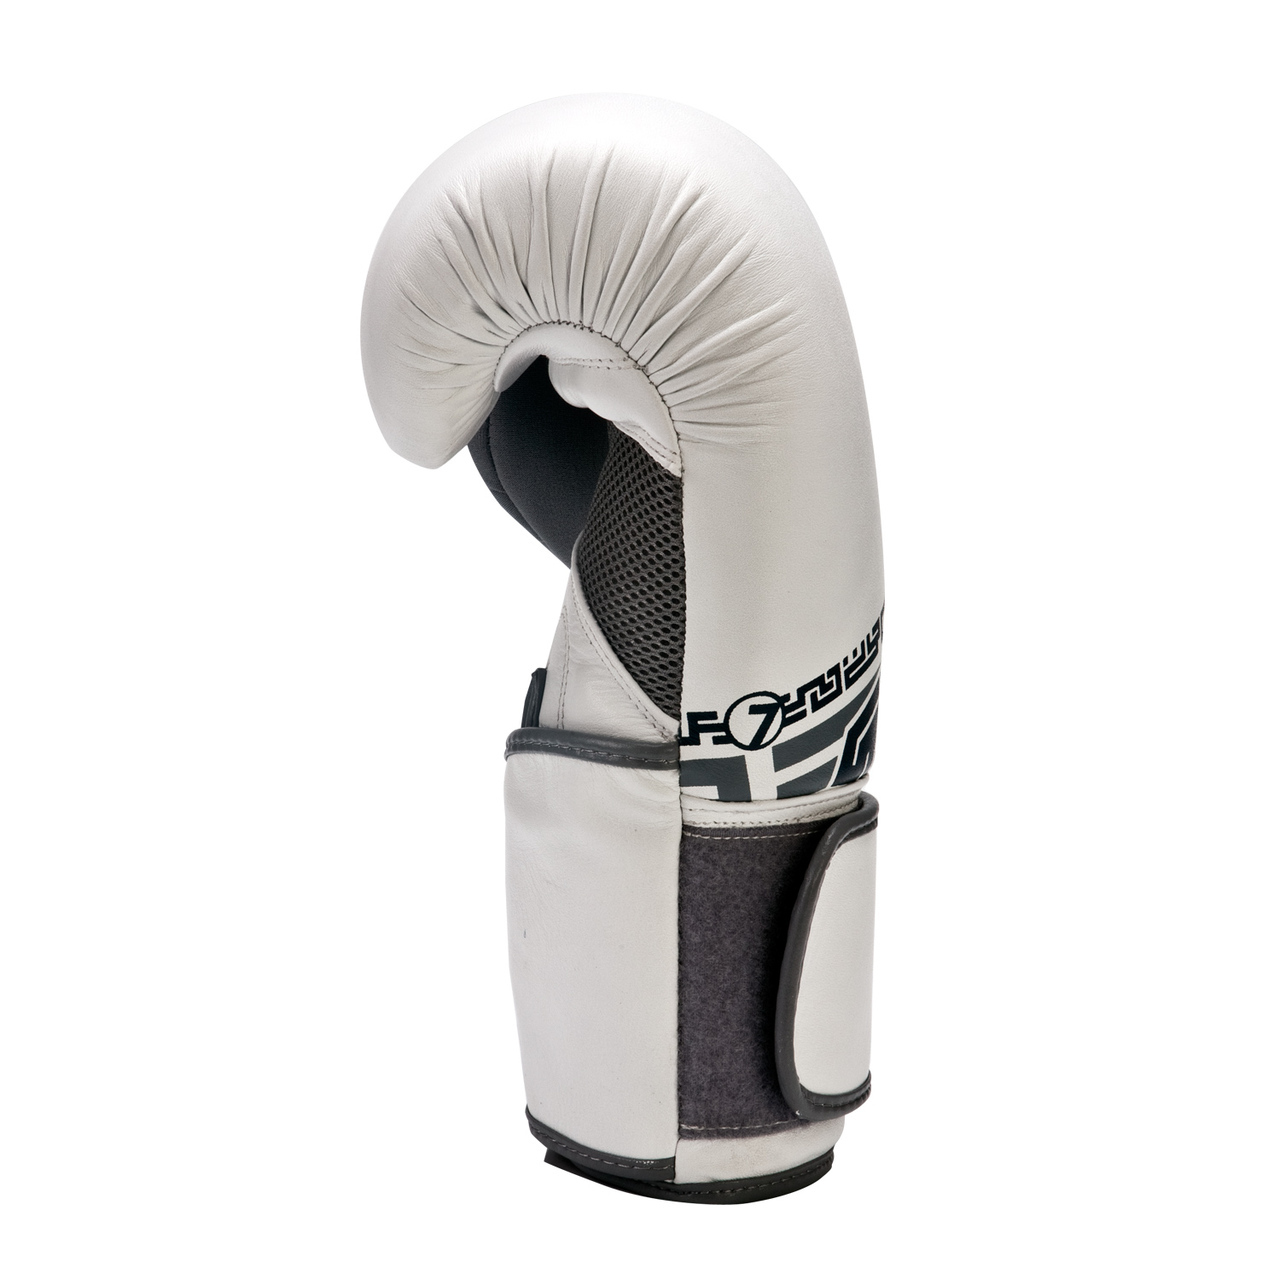 Shiv Naresh Teens Boxing Gloves 12oz: SEVEN AMERICAN BOXING GLOVE WHITE On Sale Only $79.95